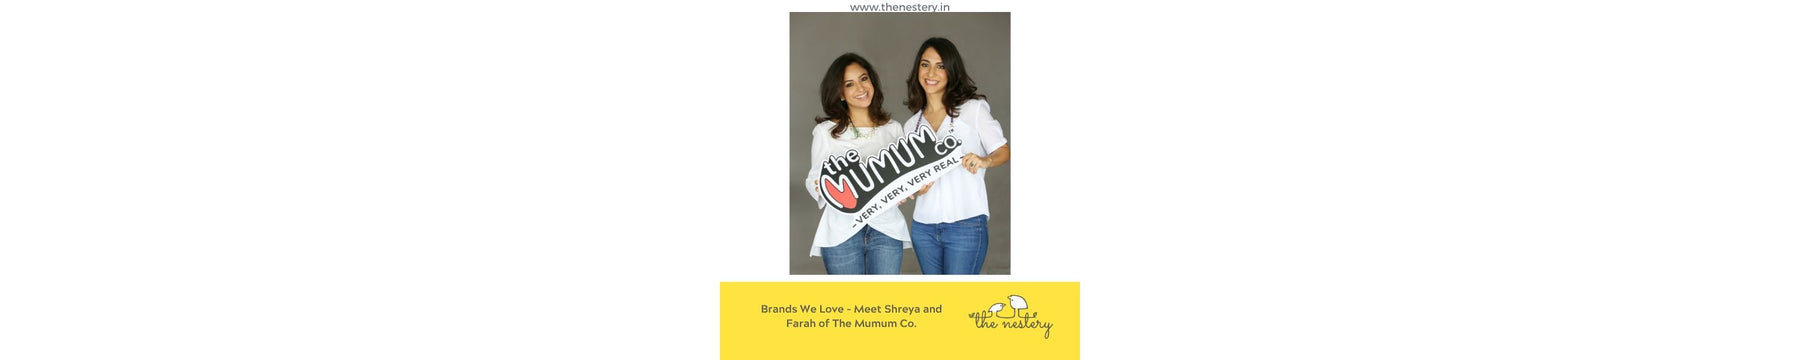 Brands We Love - Meet Farah and Shreya of The Mumum Co